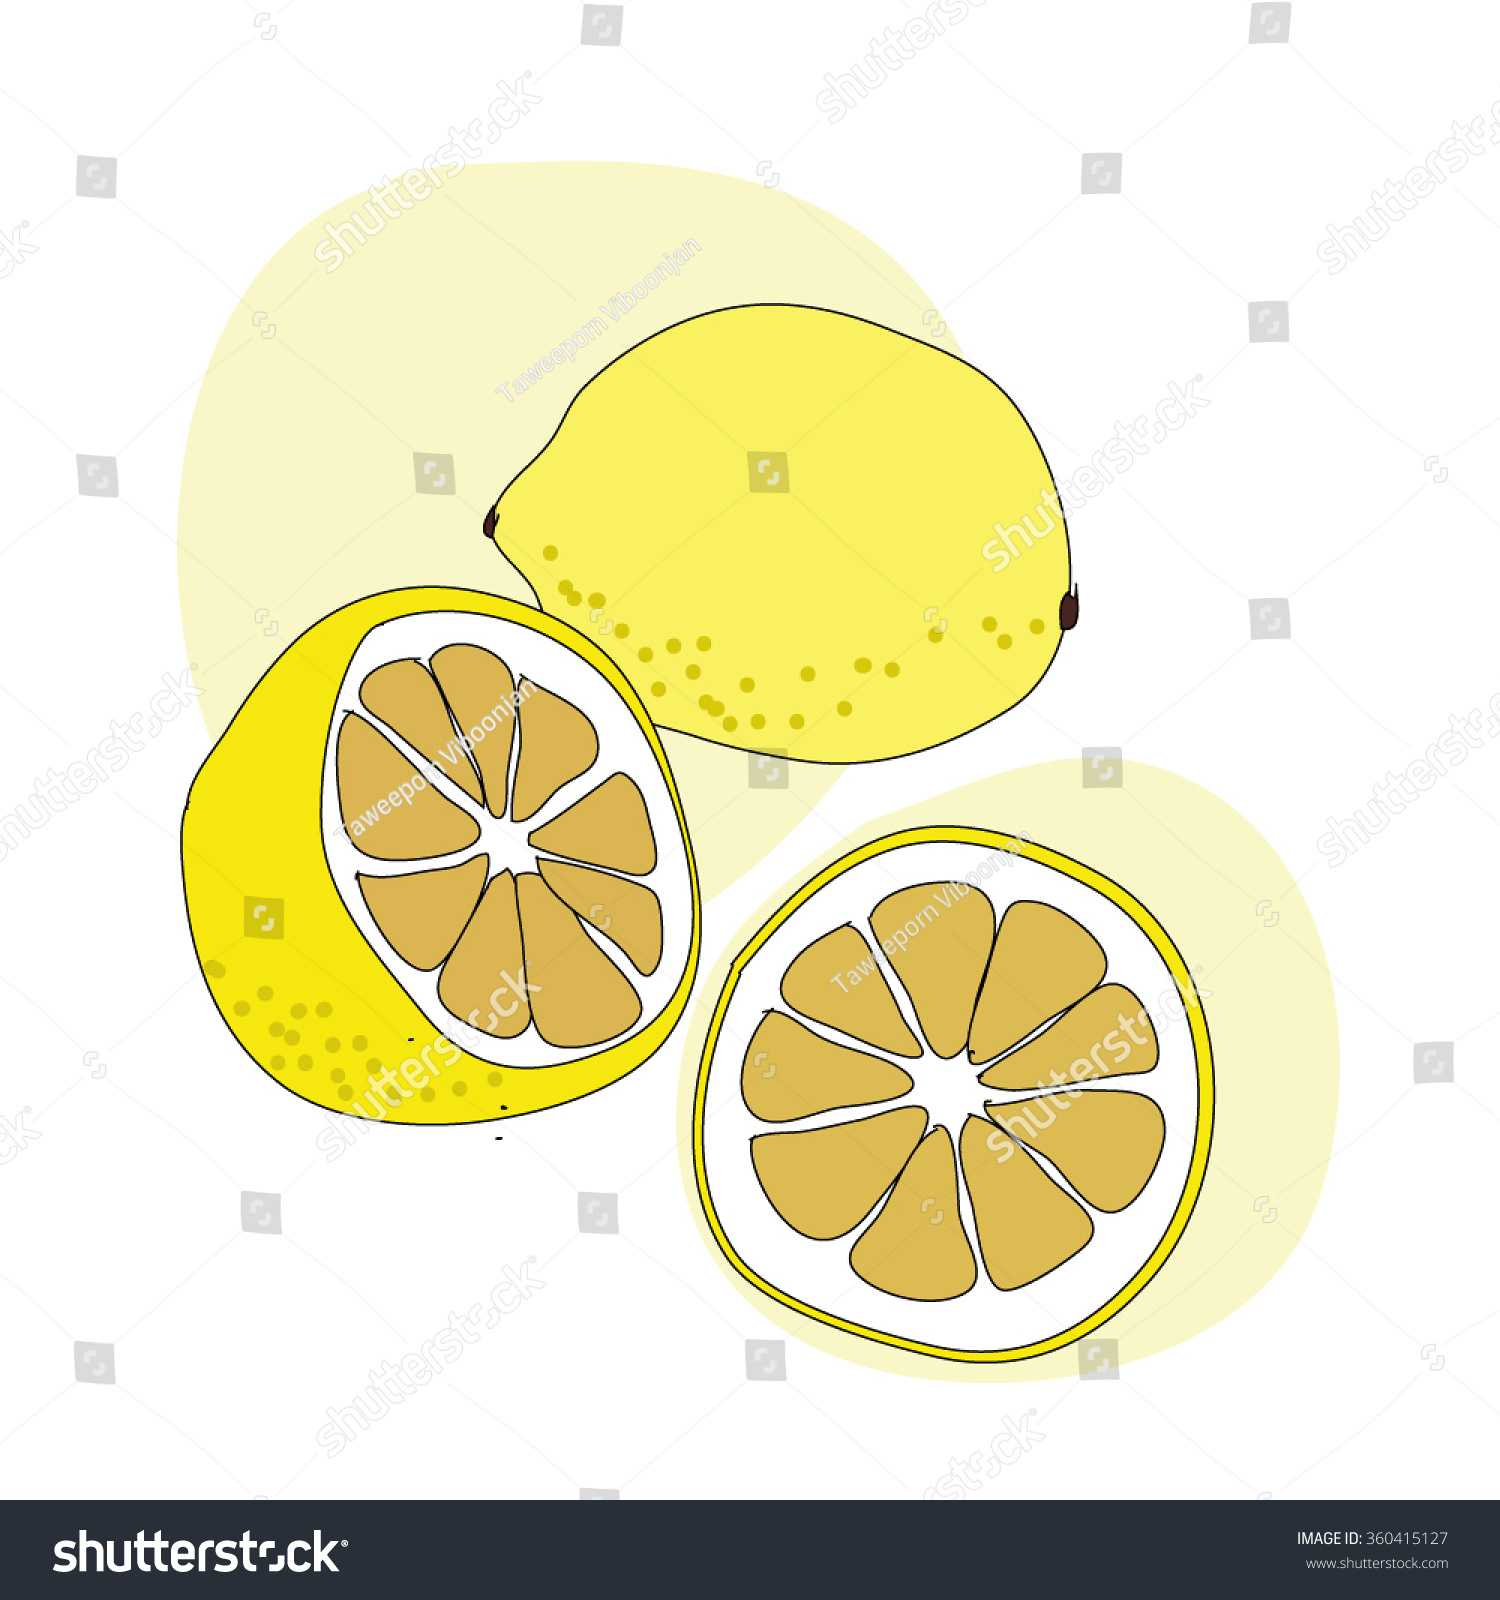 Lemons Drawing Black Line , Yellow Lemon ,Drawing Lemon ...